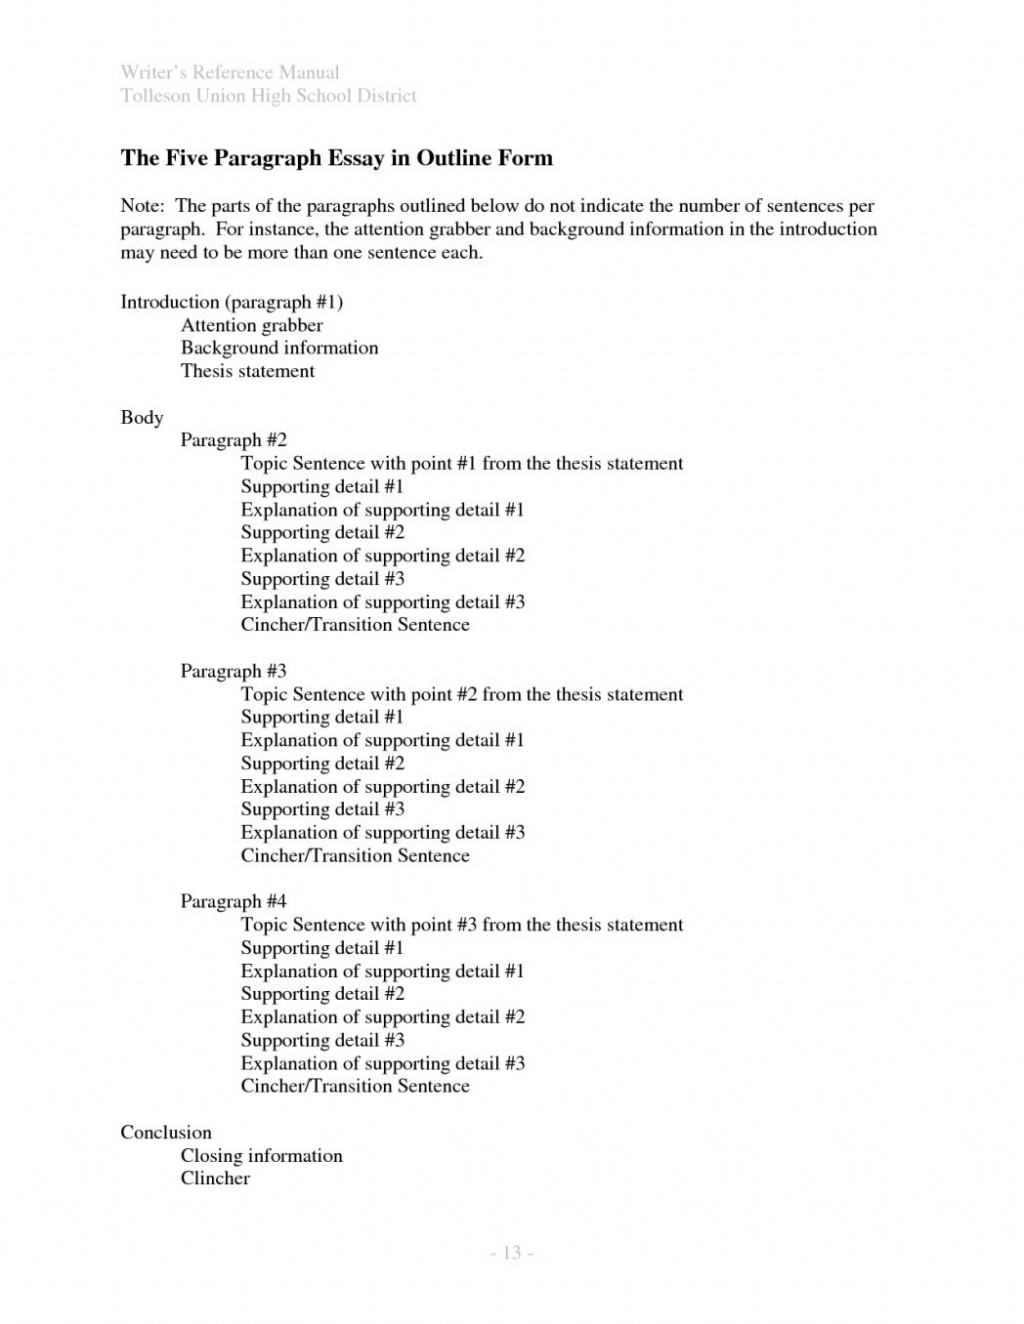 013 An Outline For Research Paper Argumentative Essay Abortion Inside High School Formidable Example How To Term Topic A Large